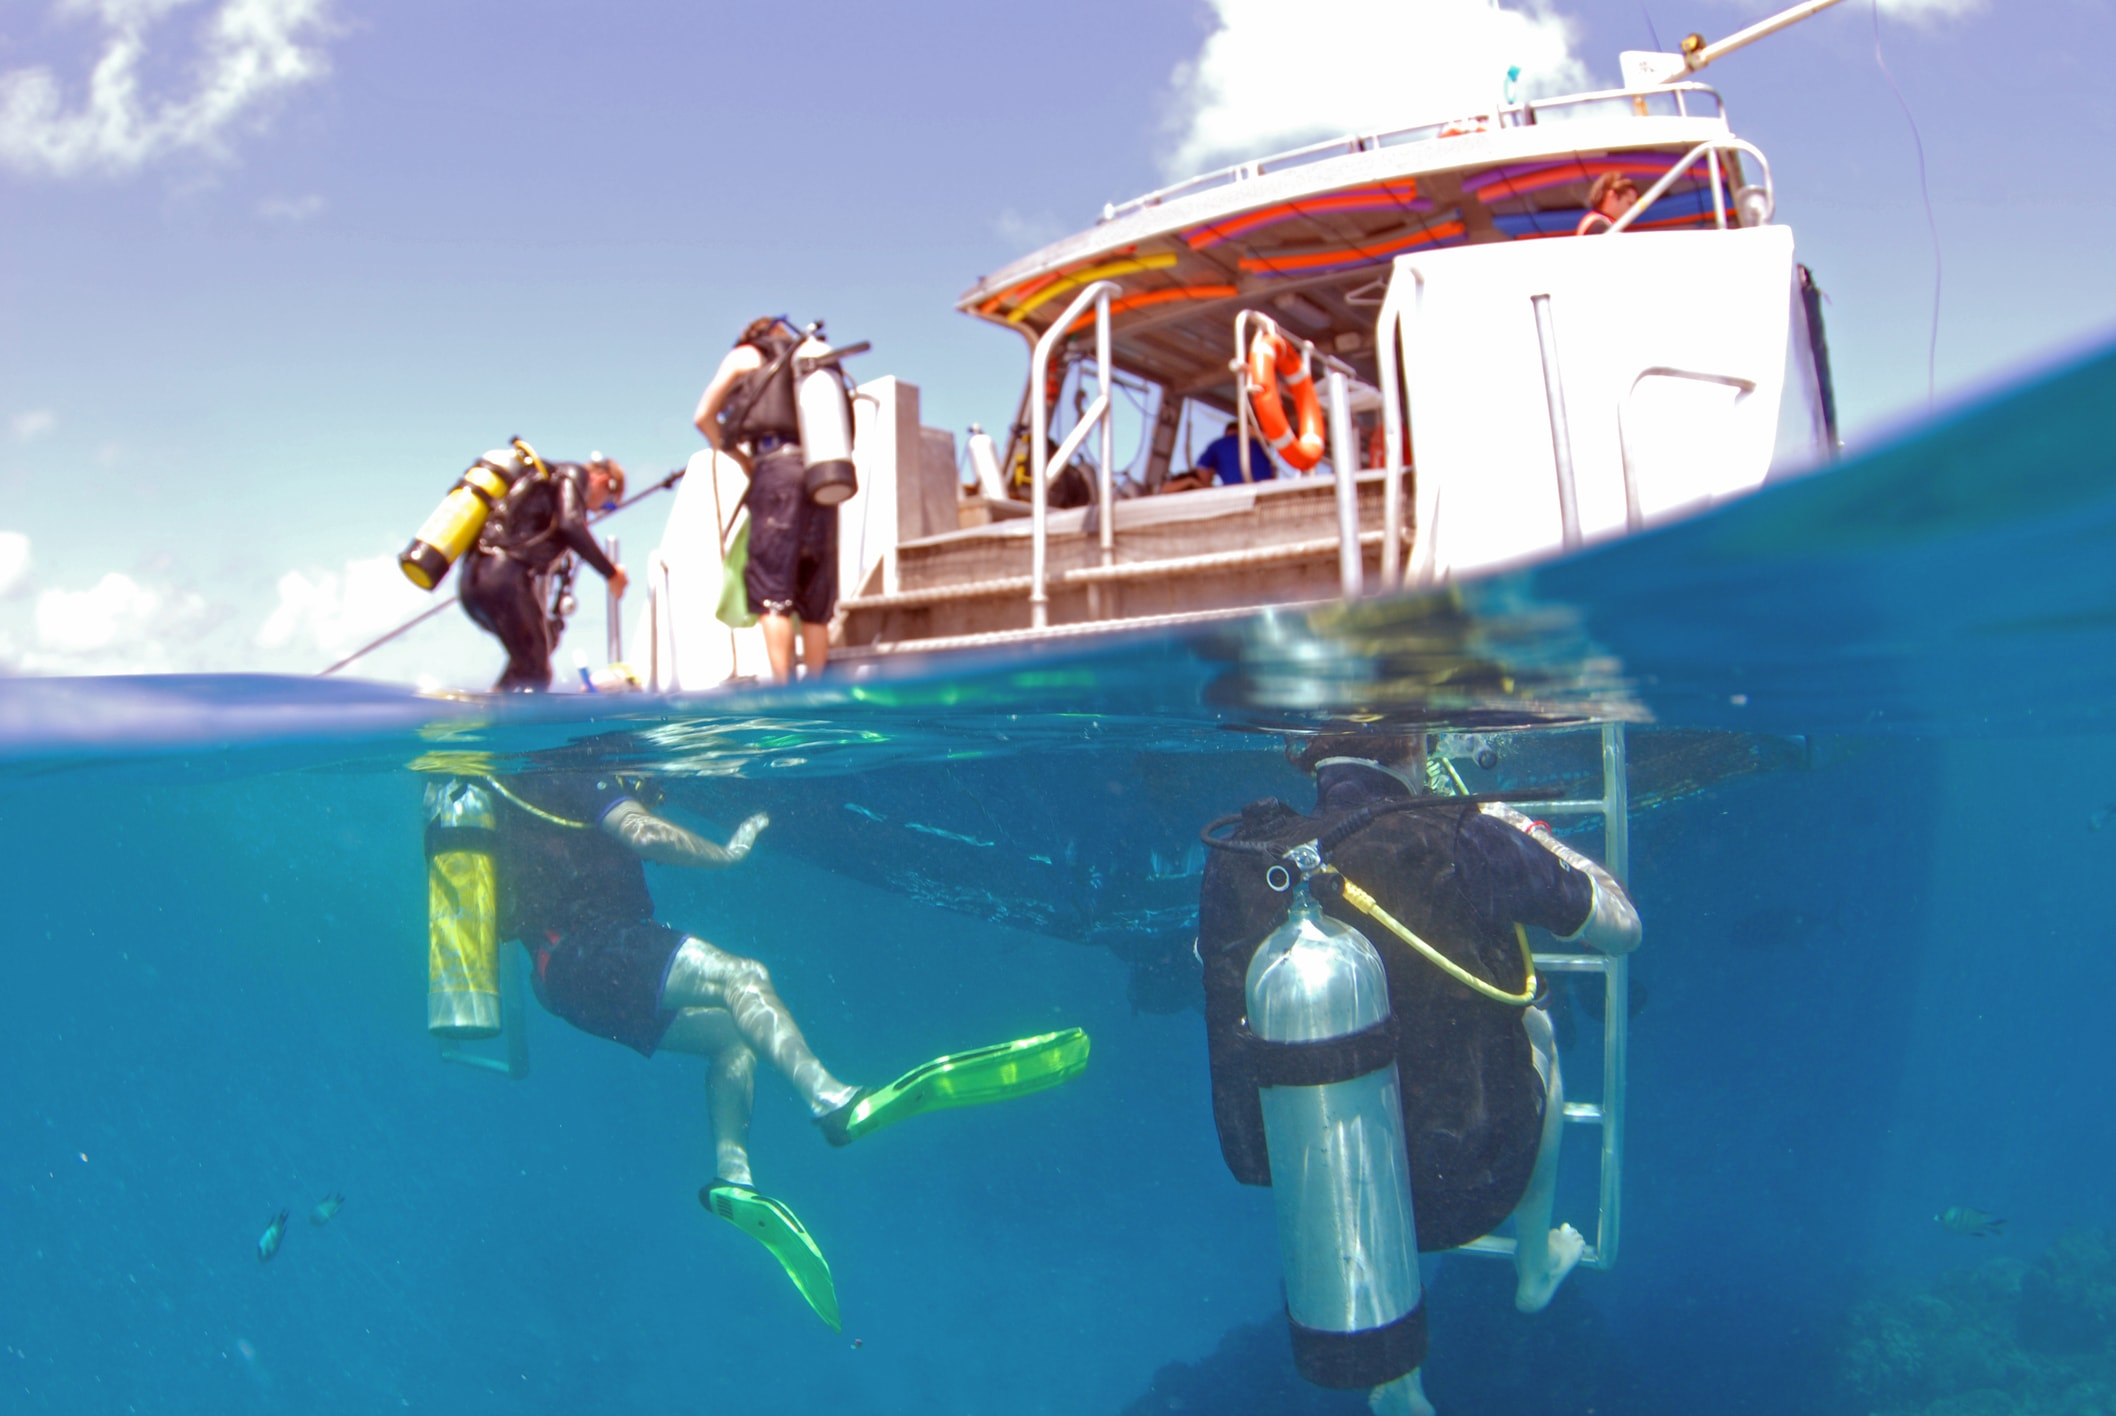 Project Feasibility study of Diving Training Centre